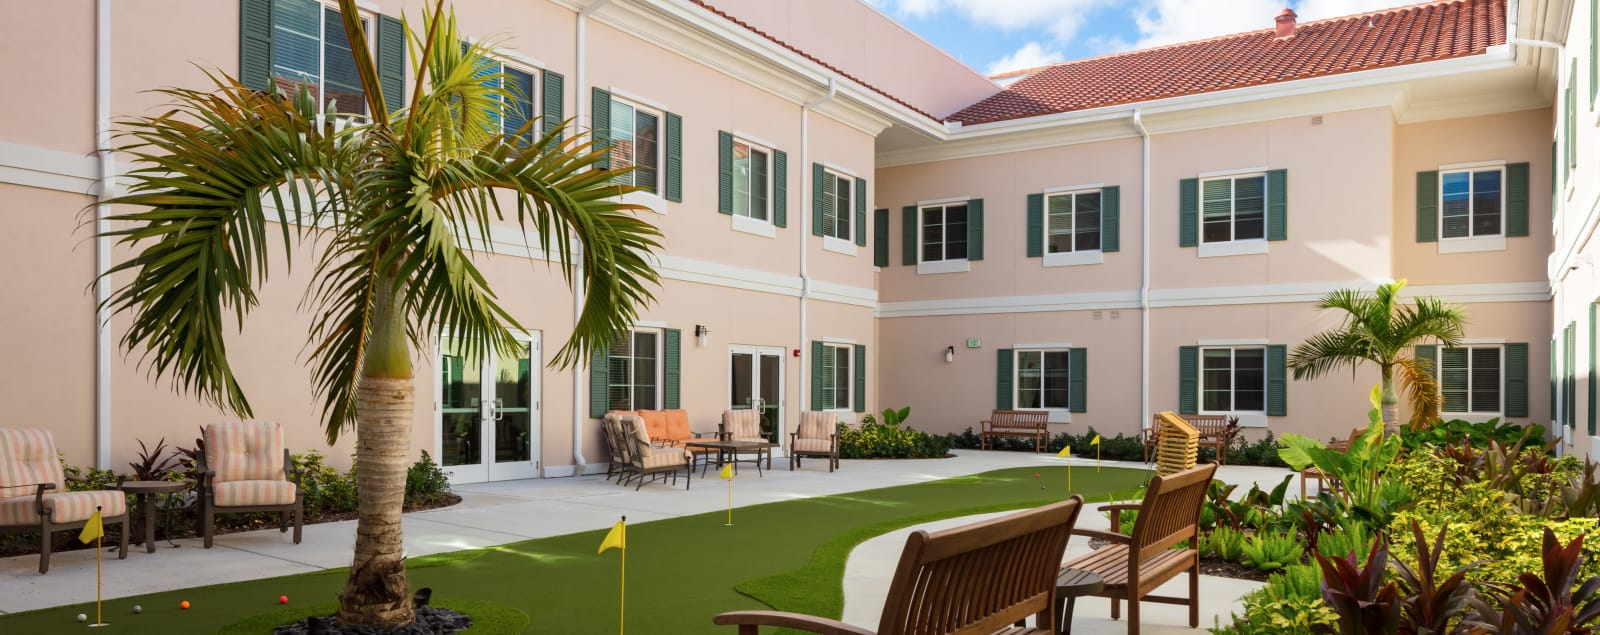 Assisted senior living in Palm Beach Gardens